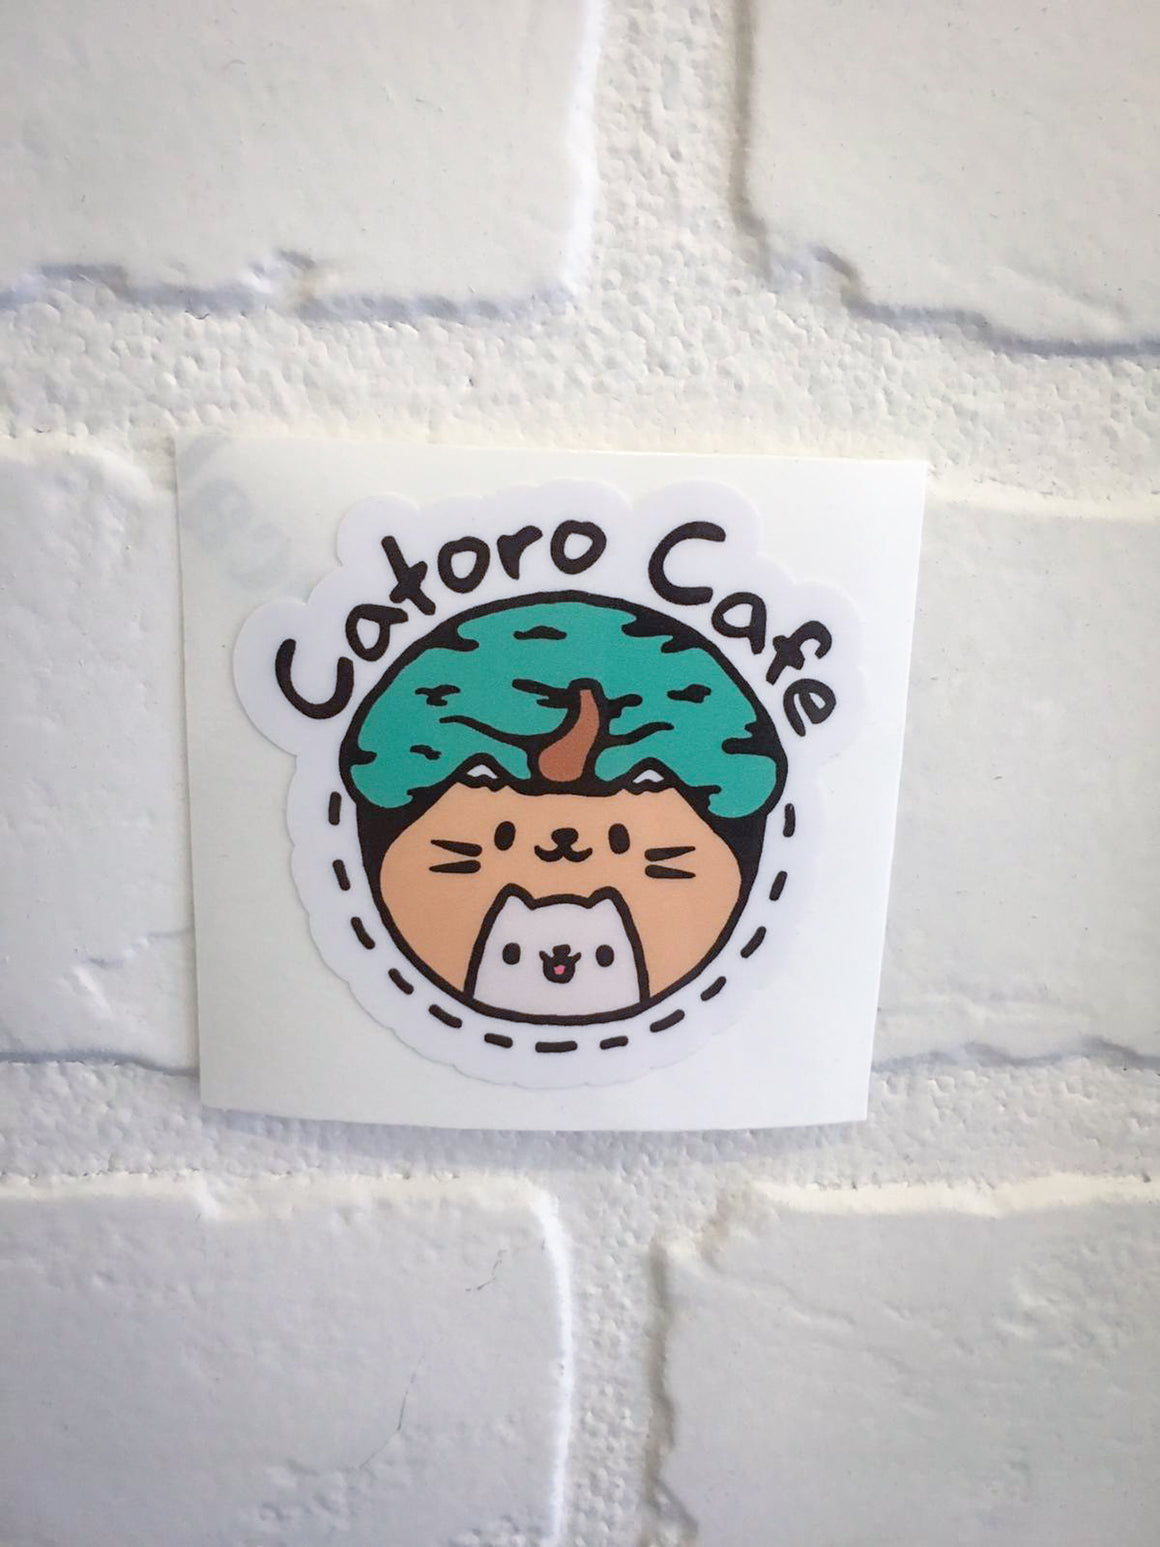 "Catoro 2"" Waterproof Sticker - Catoro Cat Cafe"